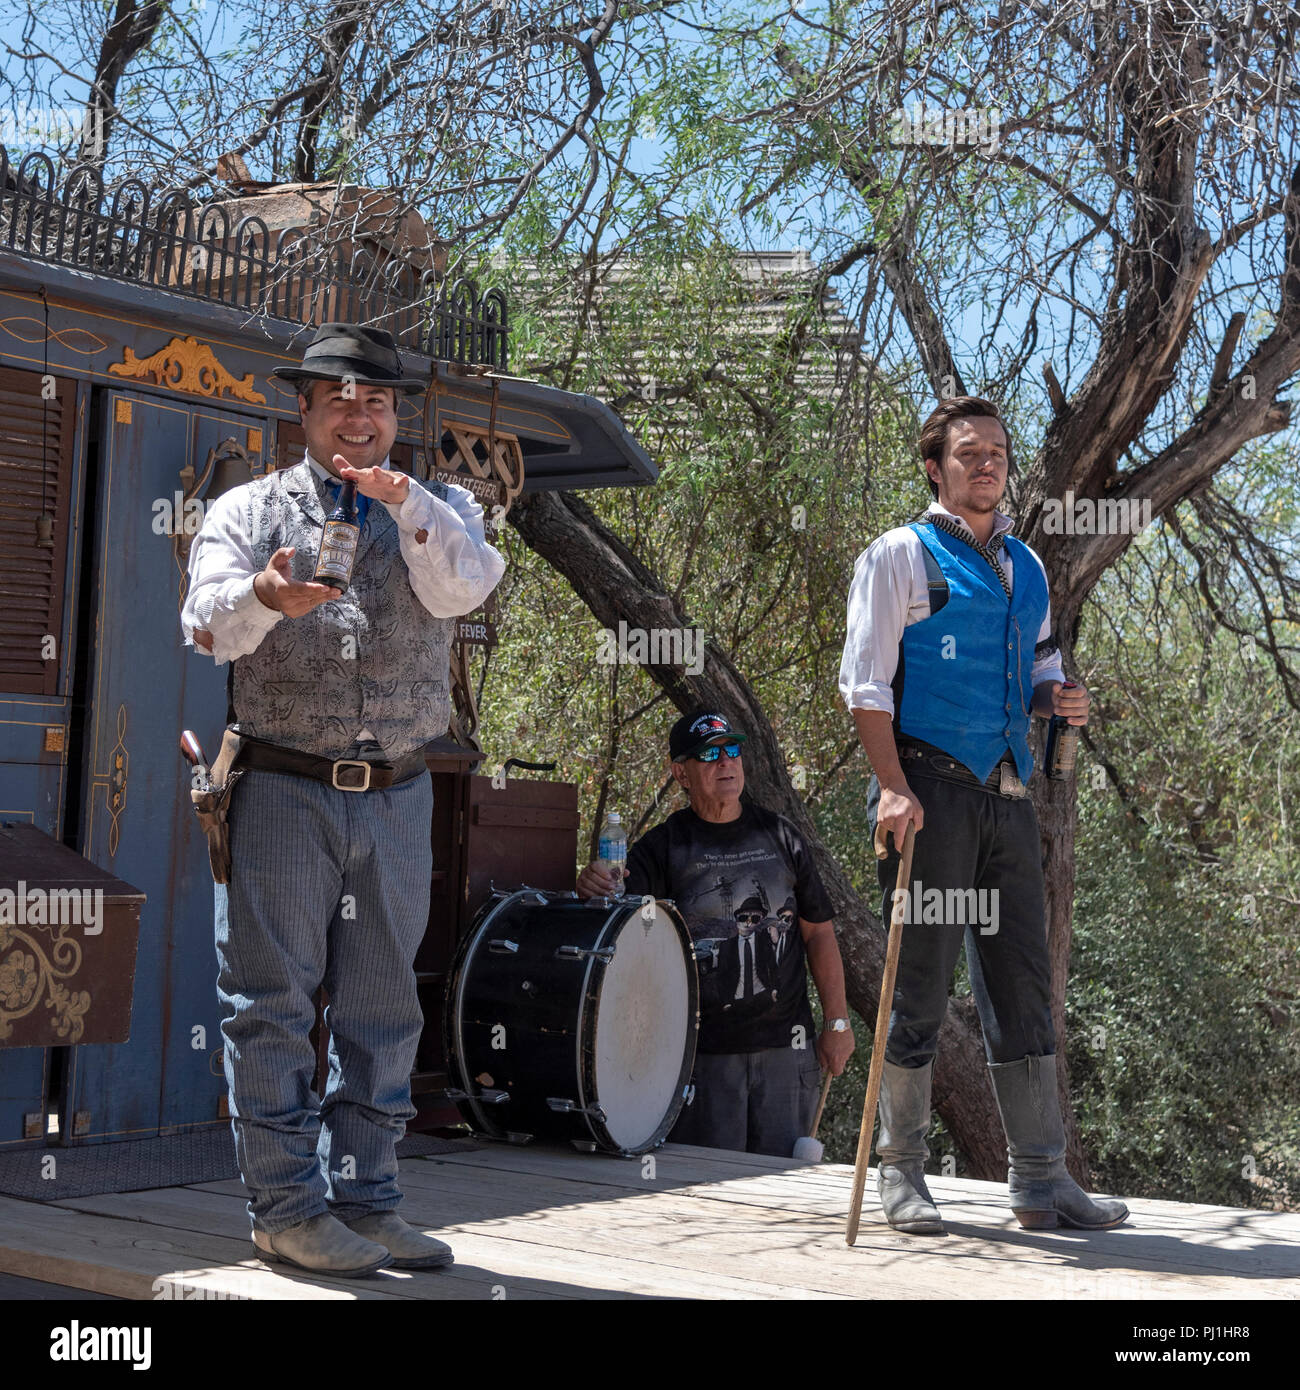 Western actors in medicine show holding bottles of elixir and tourists in background. - Stock Image